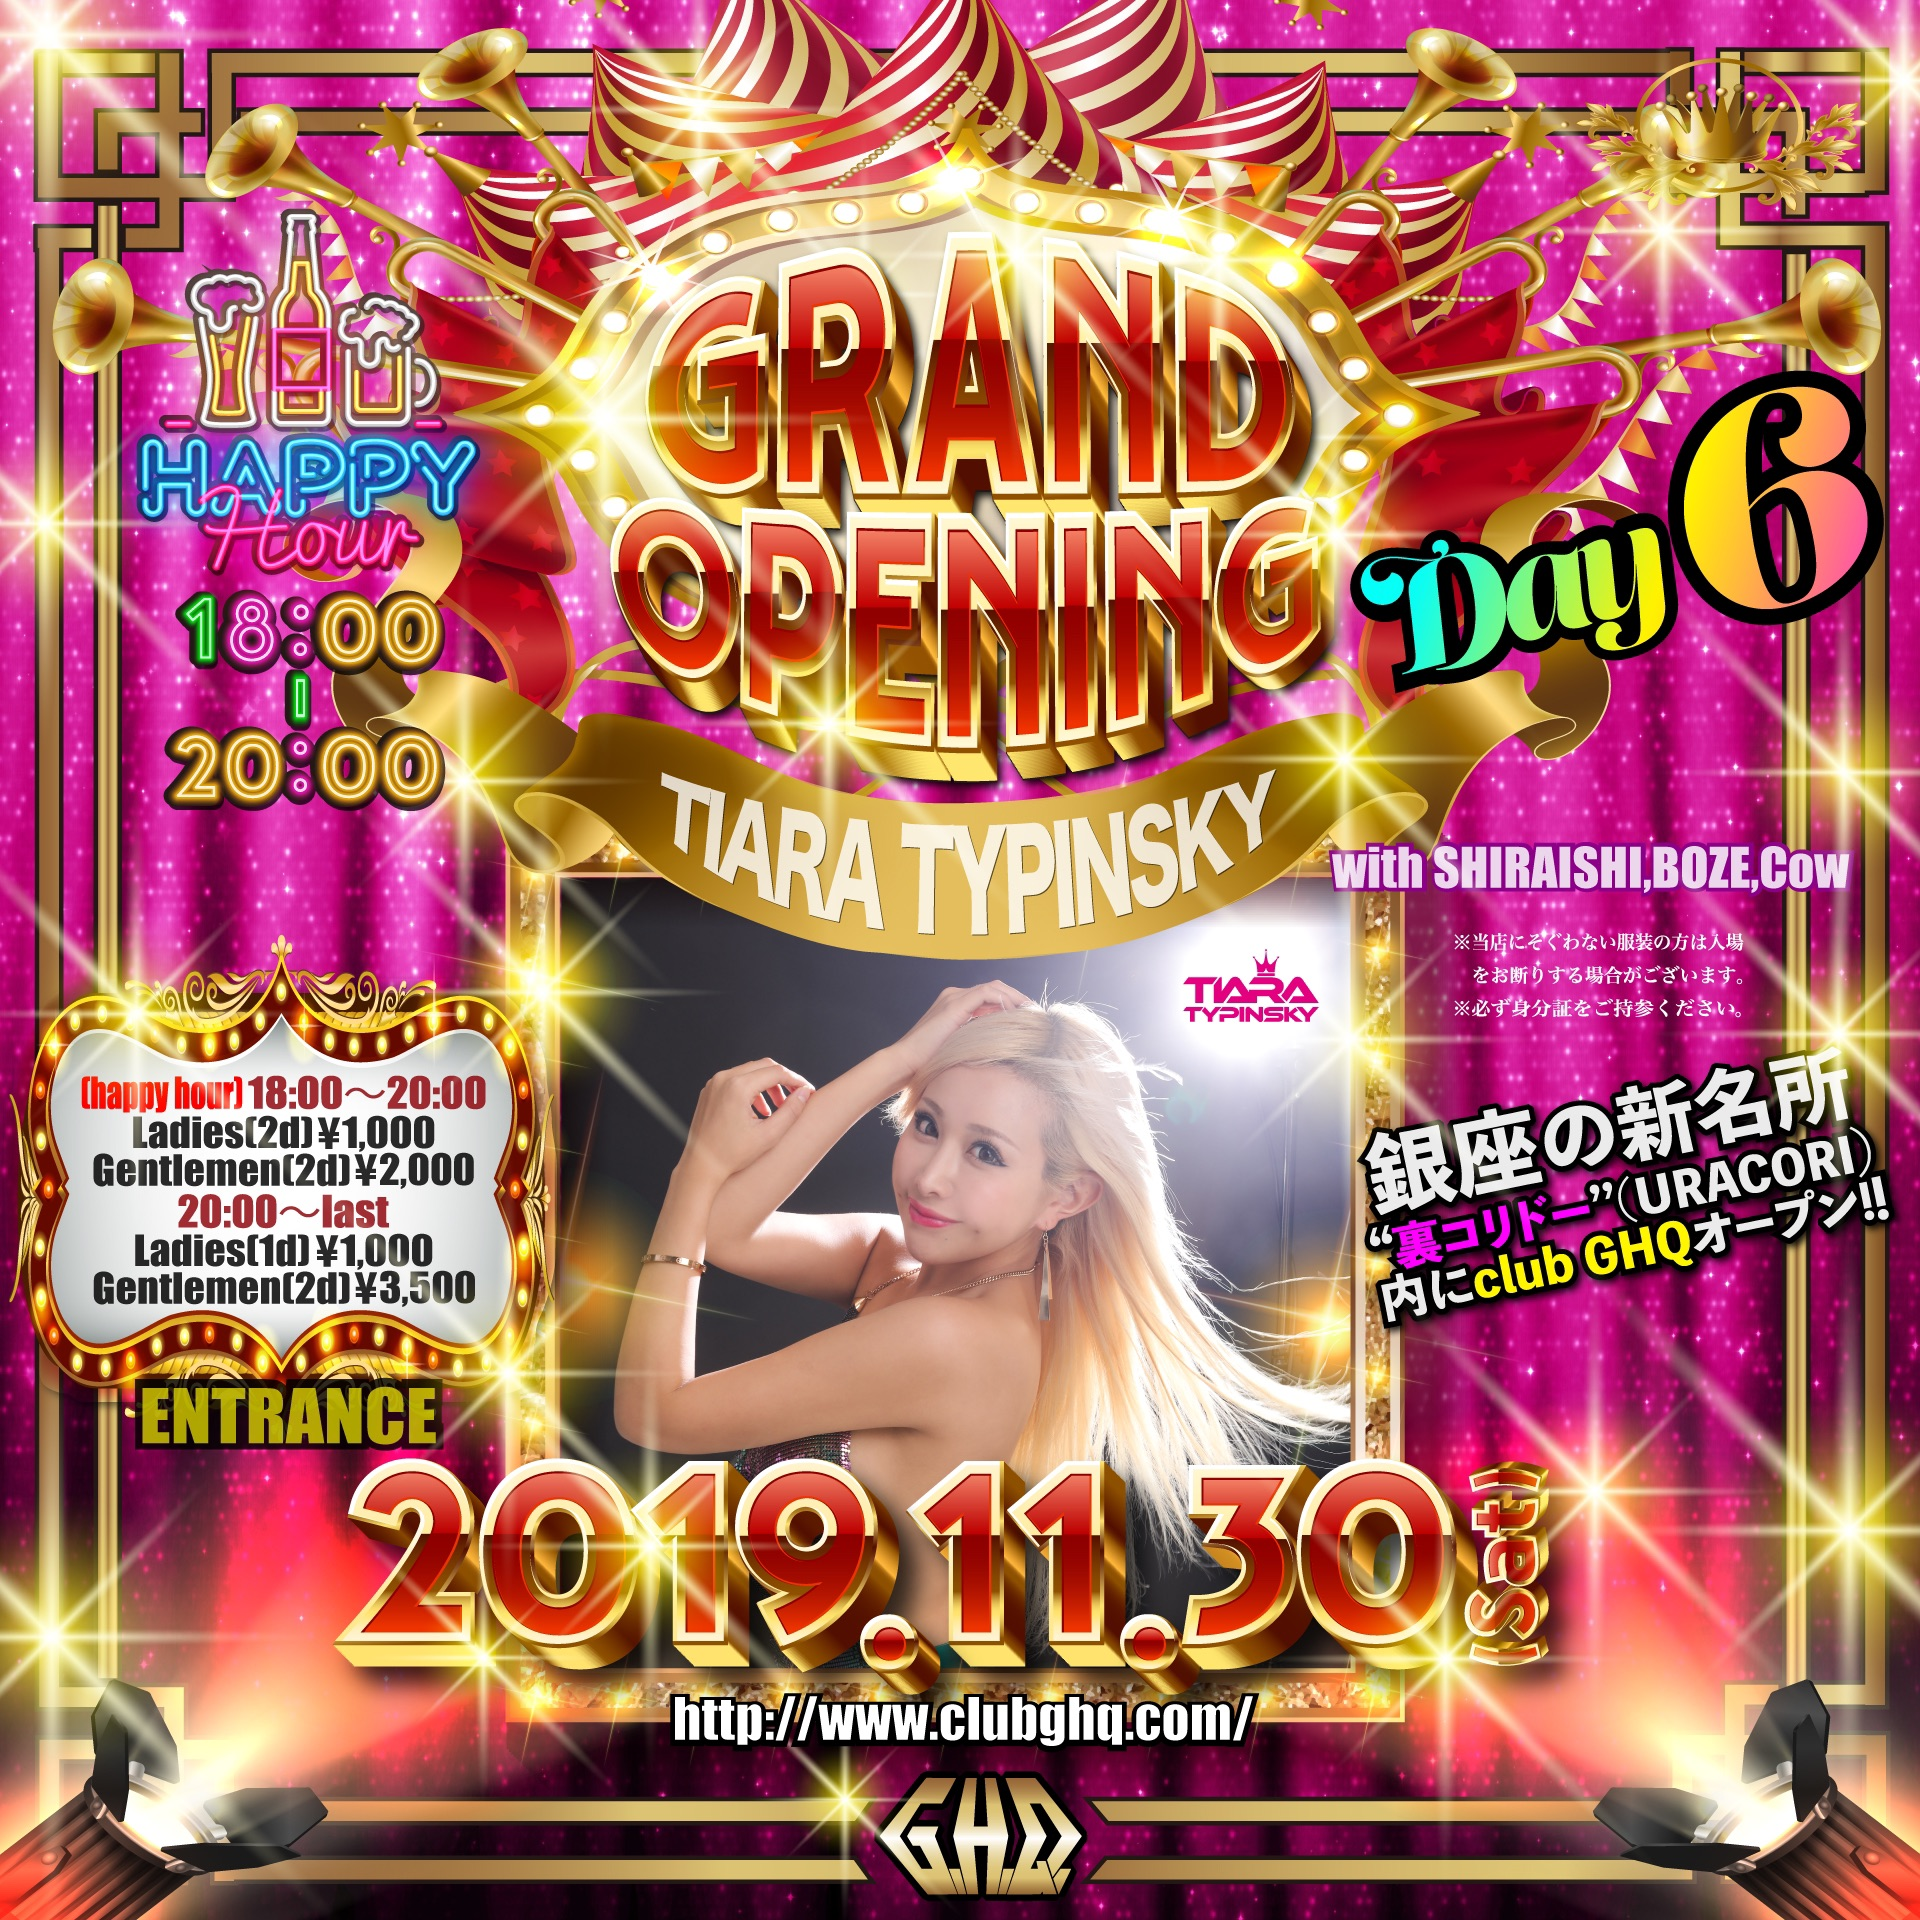 GRAND OPENING SPECIAL GUESTとして出演  CLUB GHQ